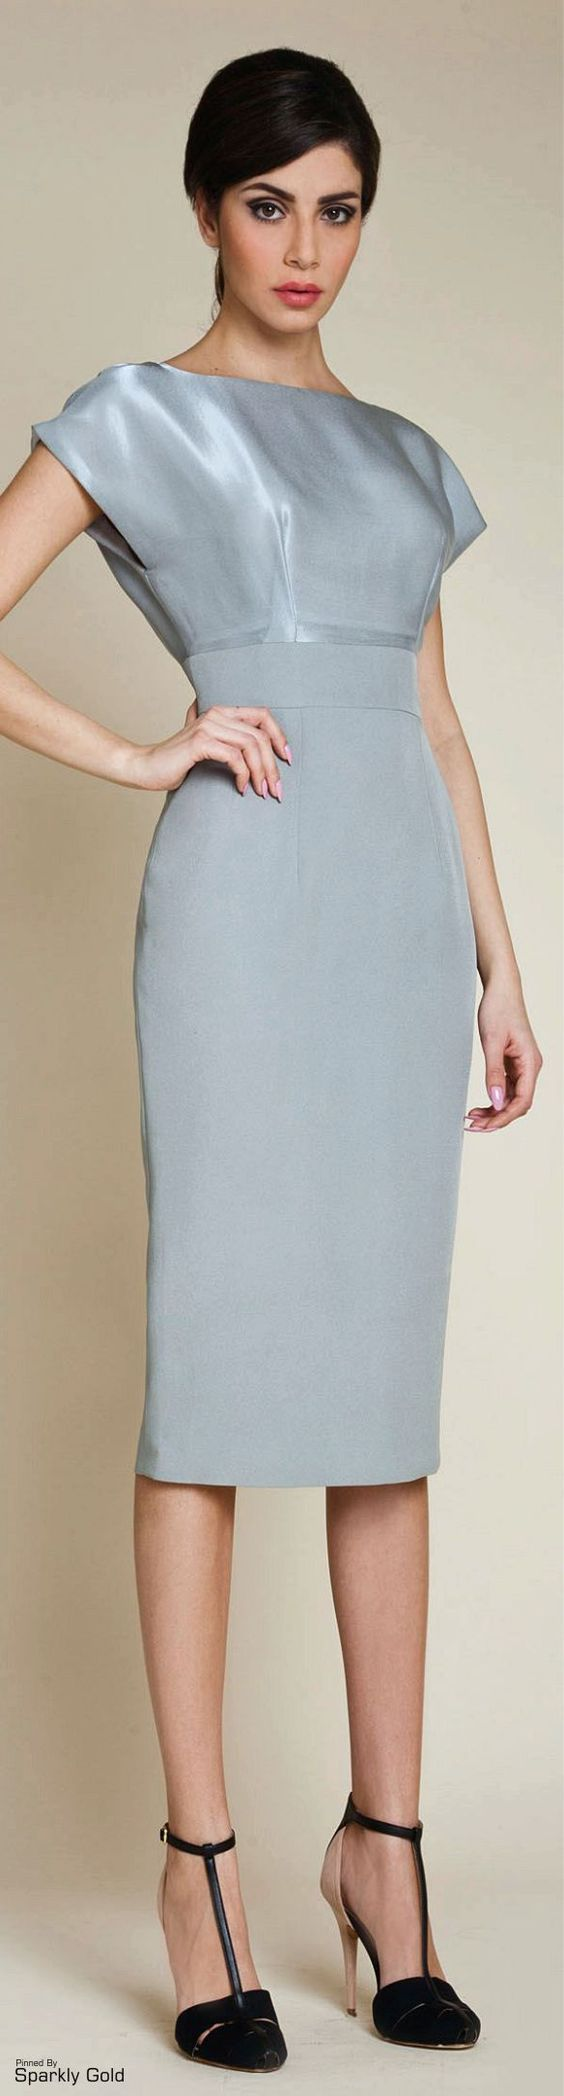 @roressclothes clothing ideas #women fashion gray silver dress